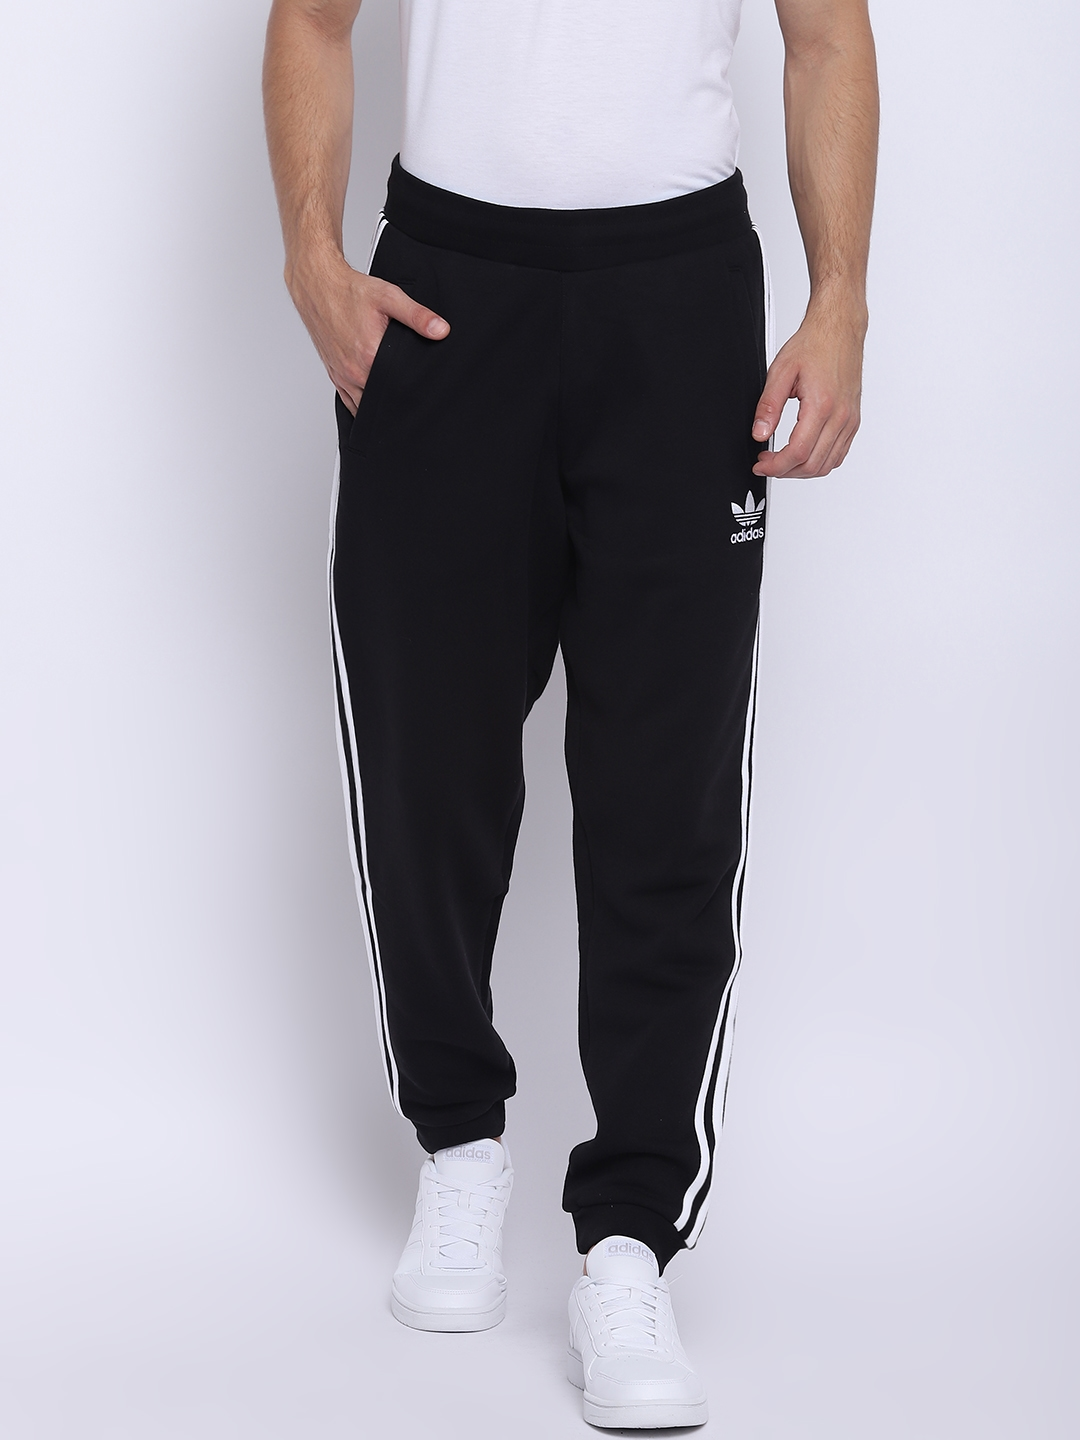 88047c03731e4 3a015683-cb6f-4a96-bf87-1f66f4aca9f41538370422564-Adidas -Originals-Men-Black-3-Stripes-Joggers-5111538370422389-1.jpg